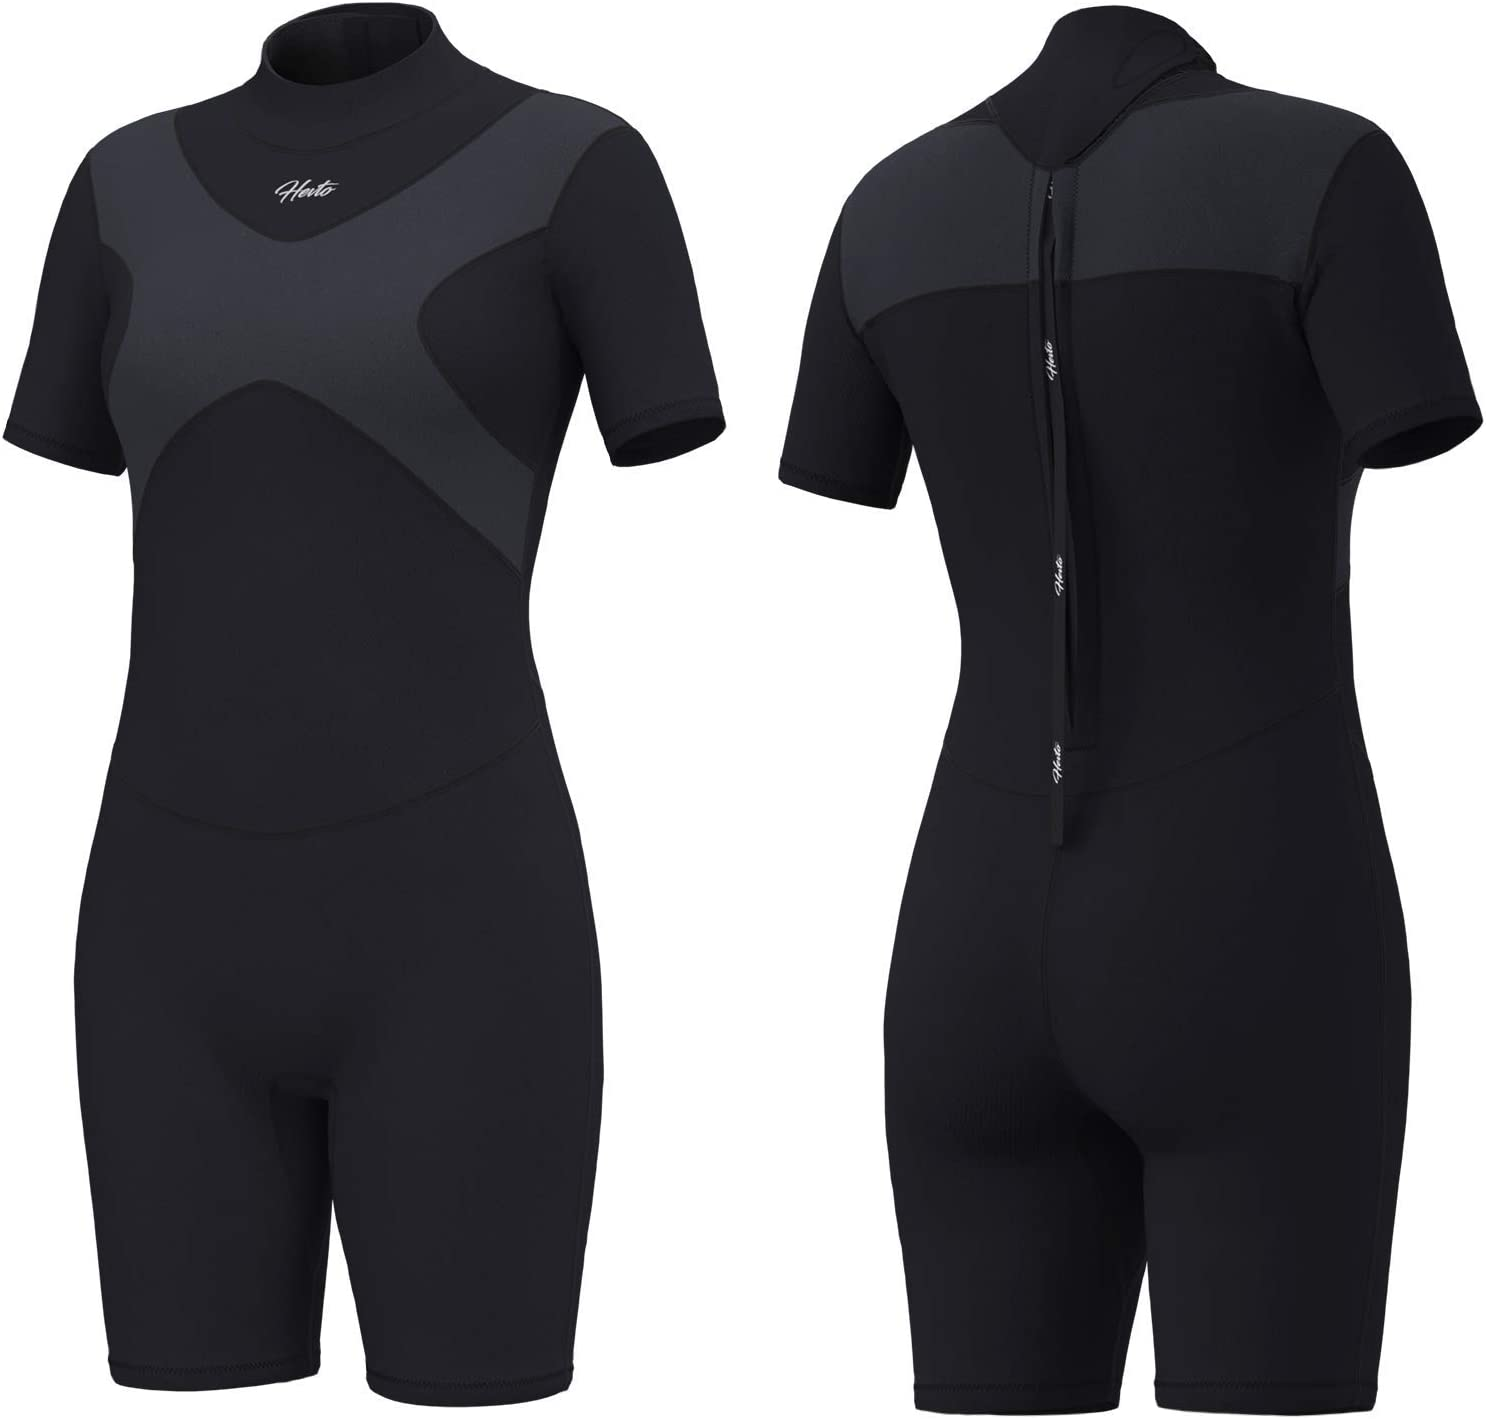 Hevto Shorty Wetsuits X Men and Women 3mm Neoprene Scuba Diving Suits Surfing Swimming Short Sleeve Back Zip